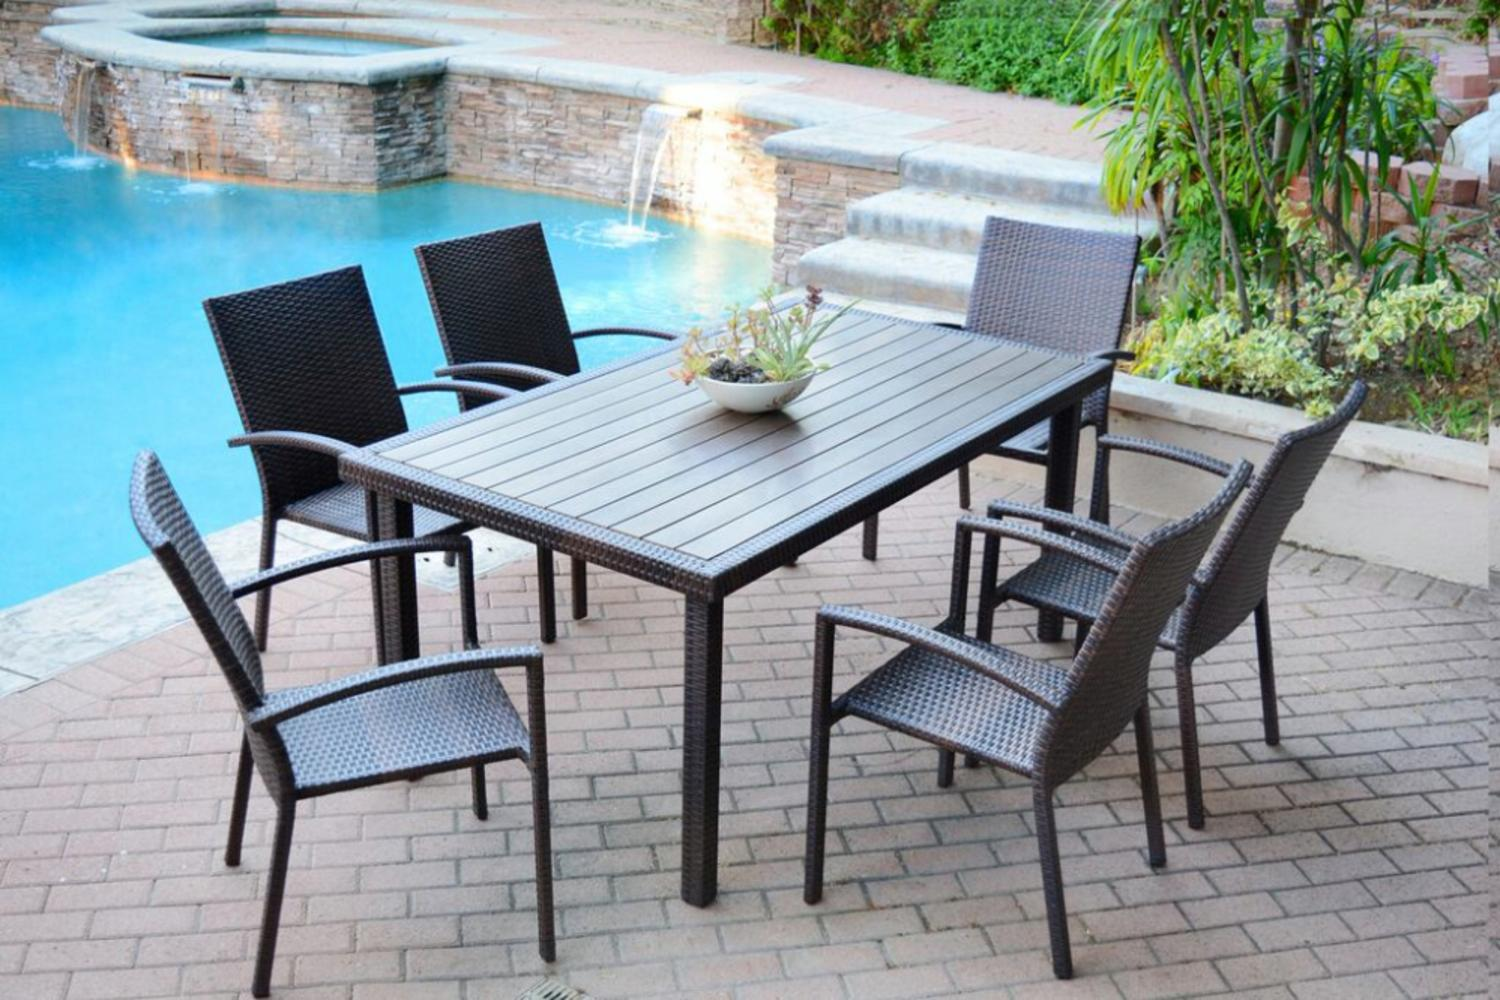 7-Piece Espresso Resin Wicker Outdoor Dining Table and Chairs Furniture Set by CC Outdoor Living